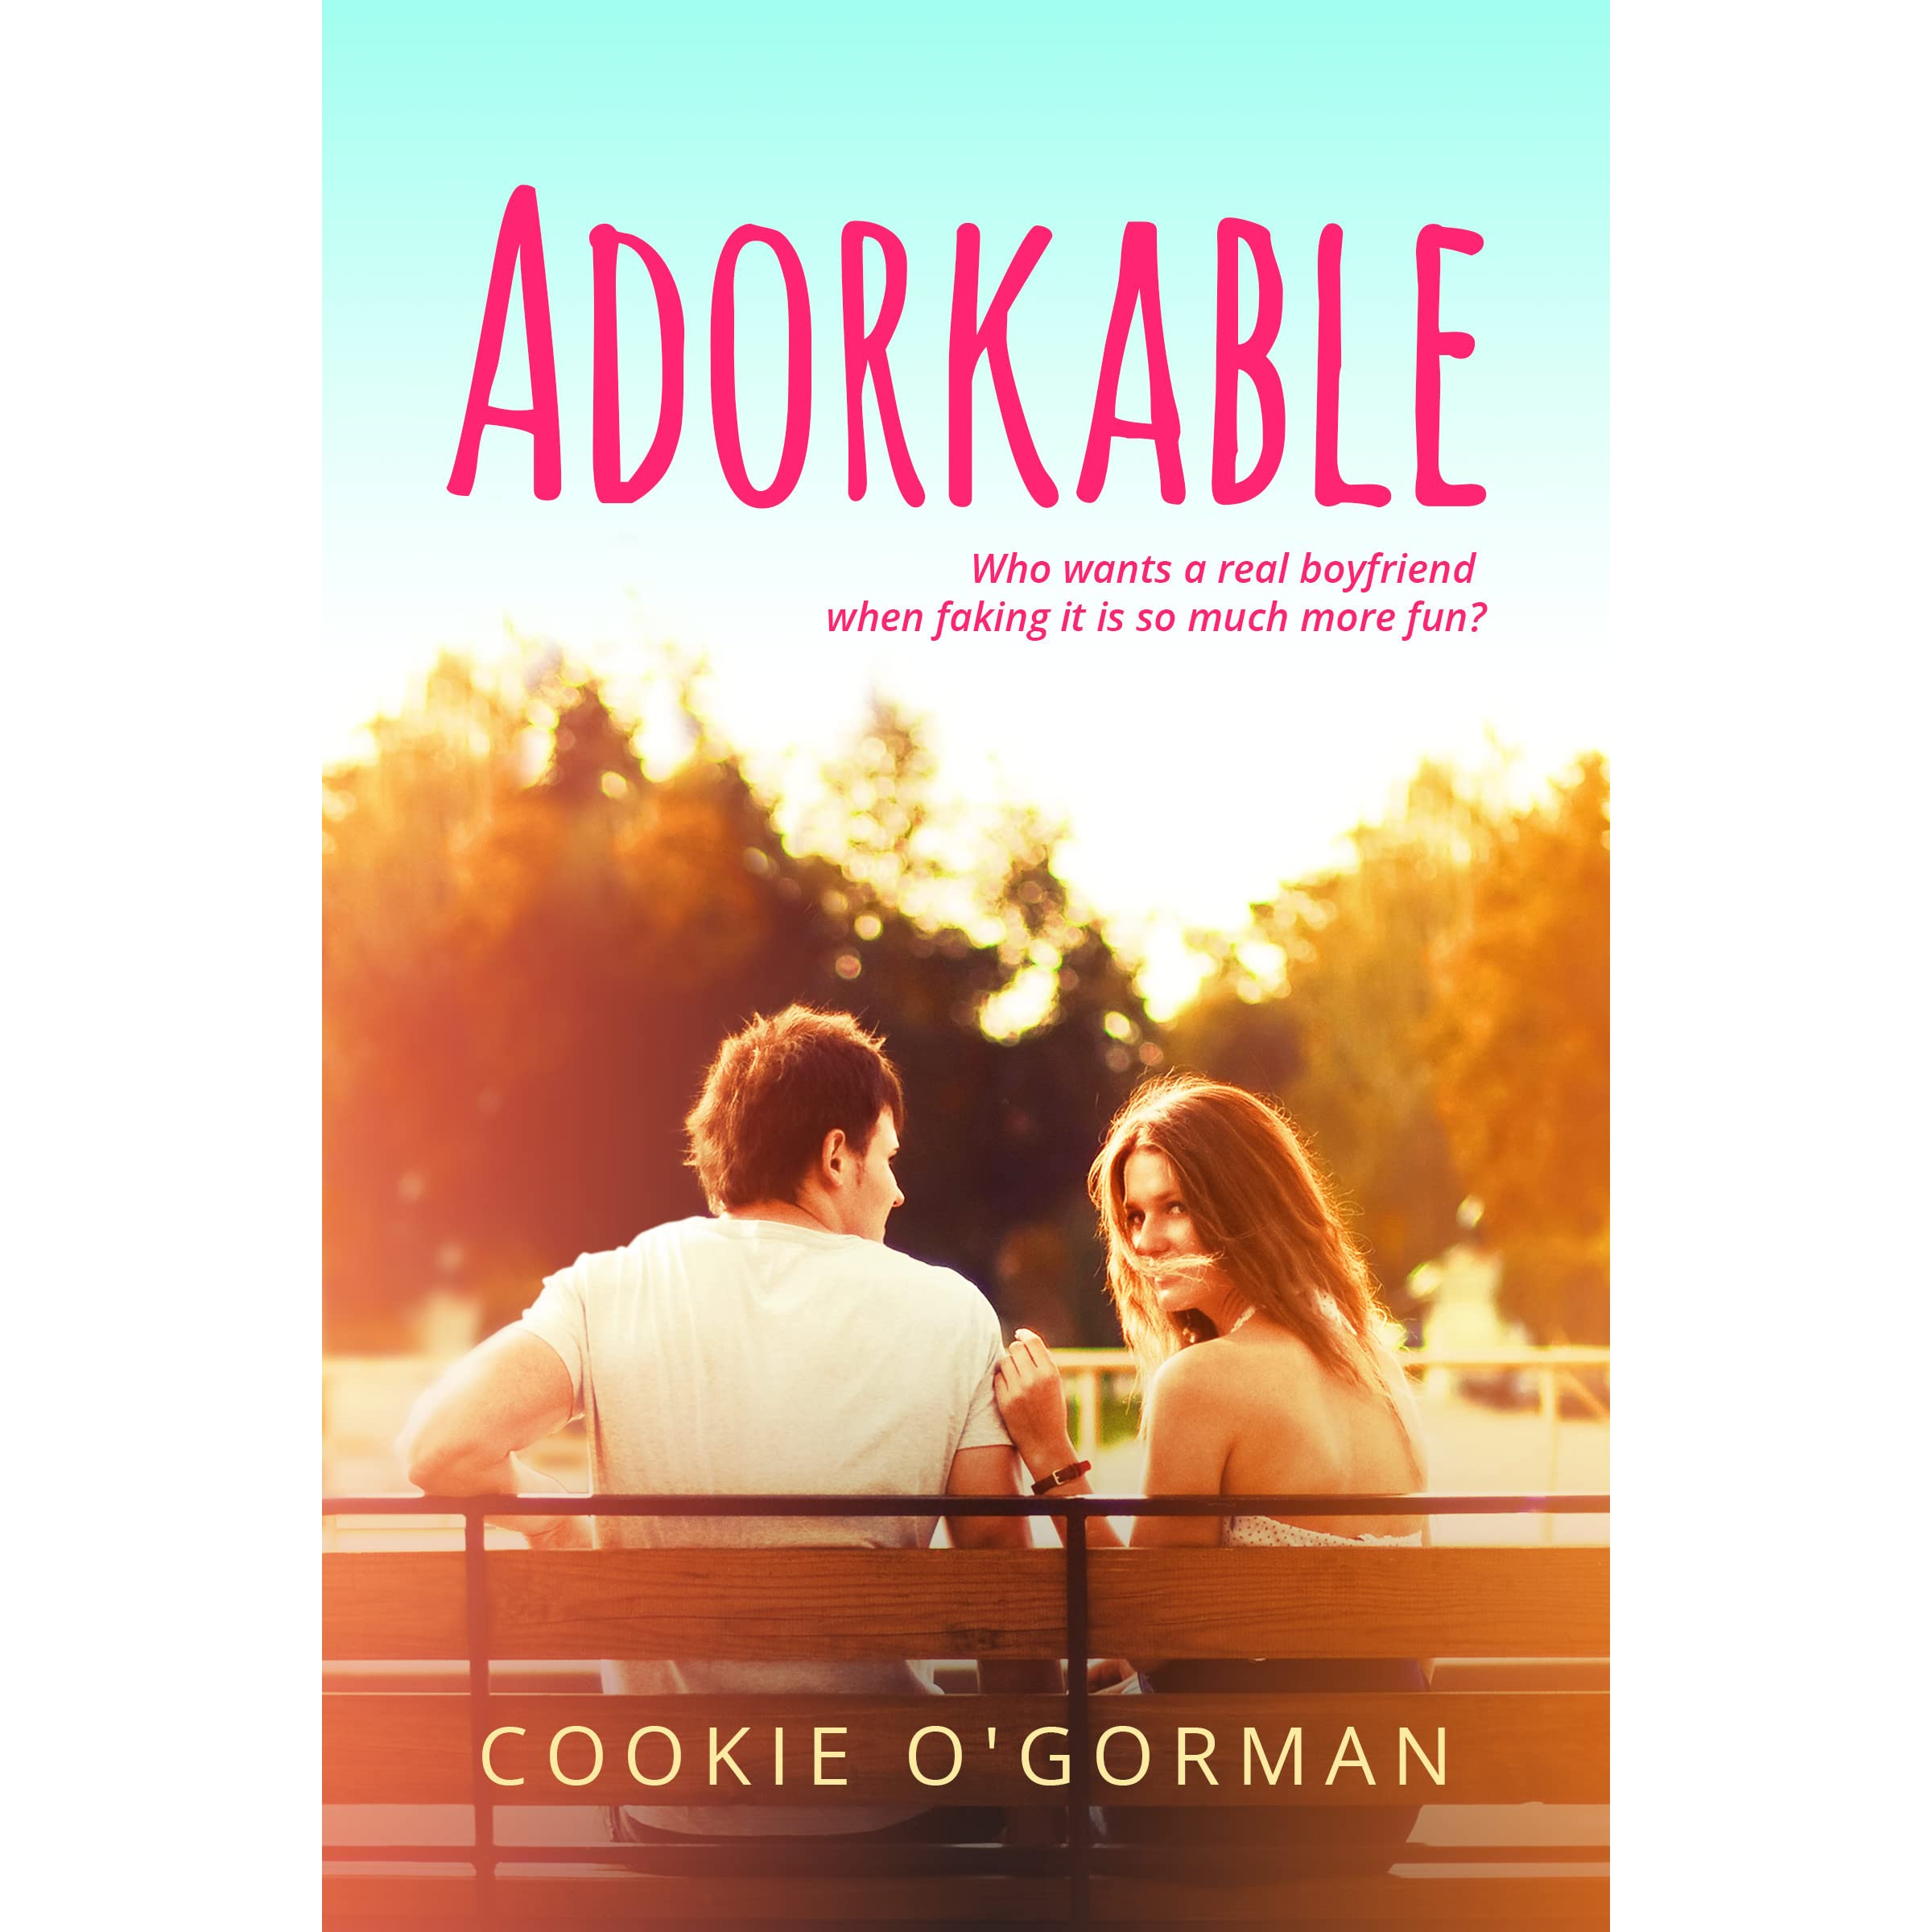 Teenage Love Quotes Goodreads : Adorkable by Cookie OGorman Reviews, Discussion, Bookclubs, Lists